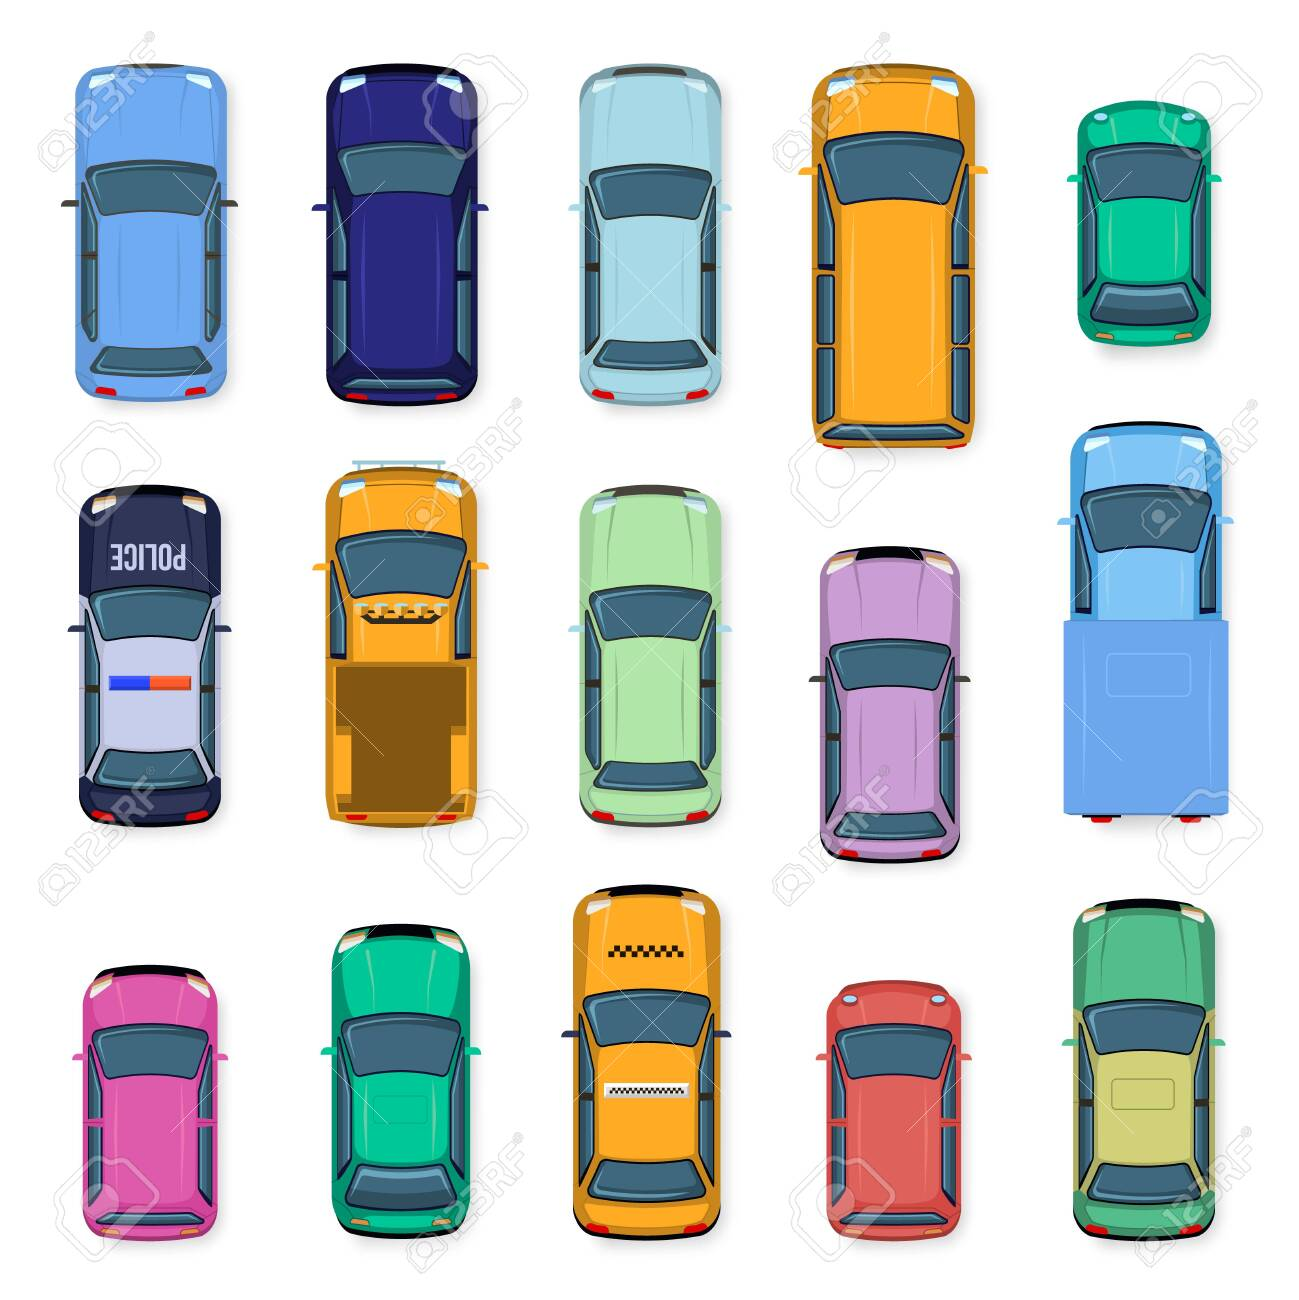 City car top view. City traffic cars roof, street vehicle taxi, police, subcompact and car above view. Auto transport isolated vector illustration set. flat vehicles from above - 142992842